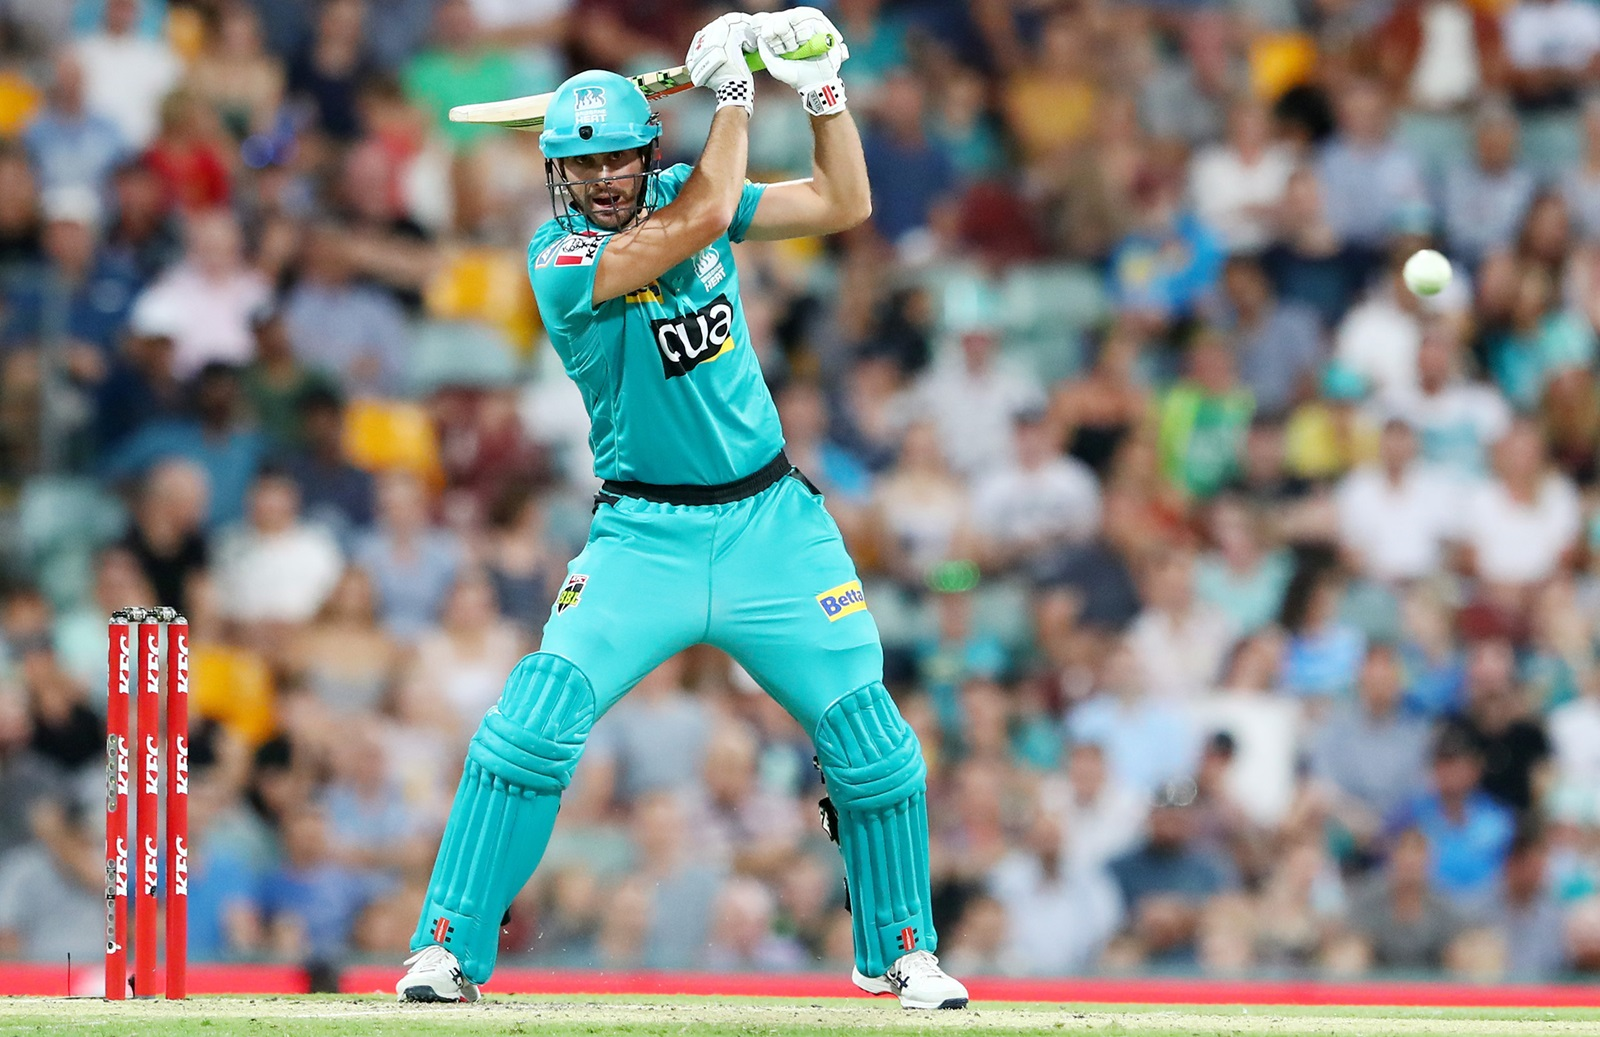 BBL09 Fantasy Tips: Heat vs Stars